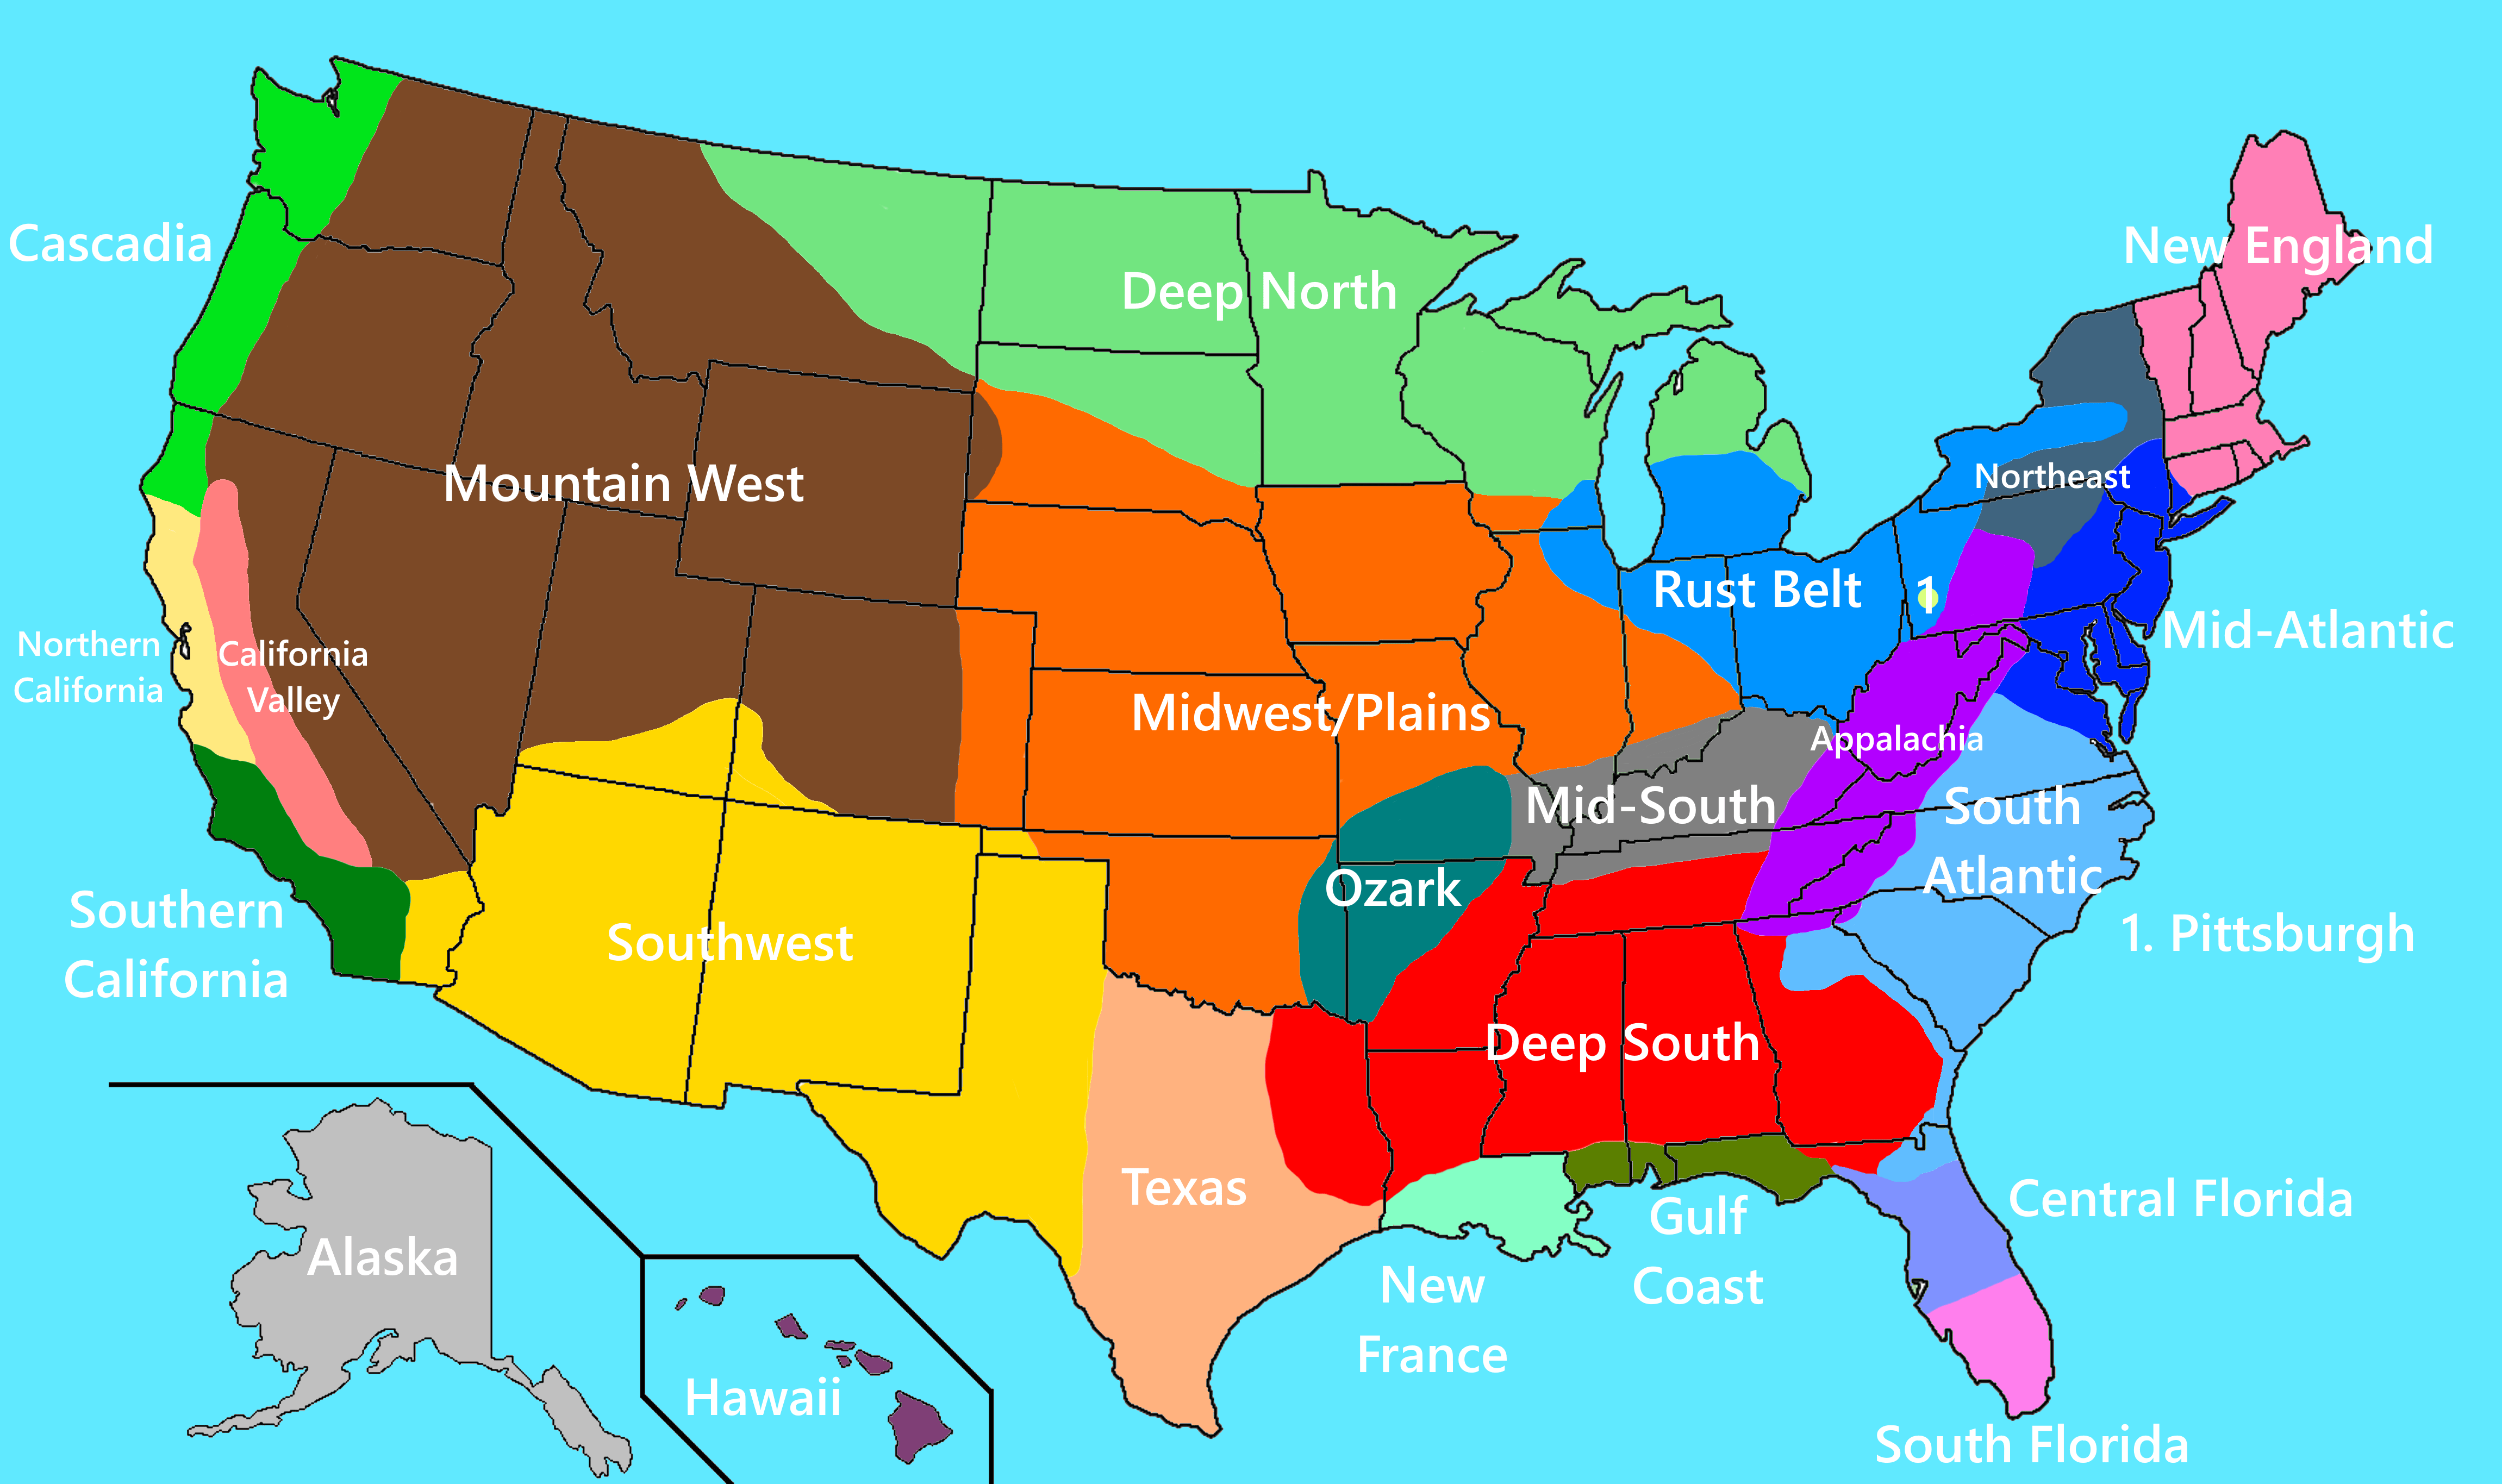 4th New And Improved Revised Regions Of The United States